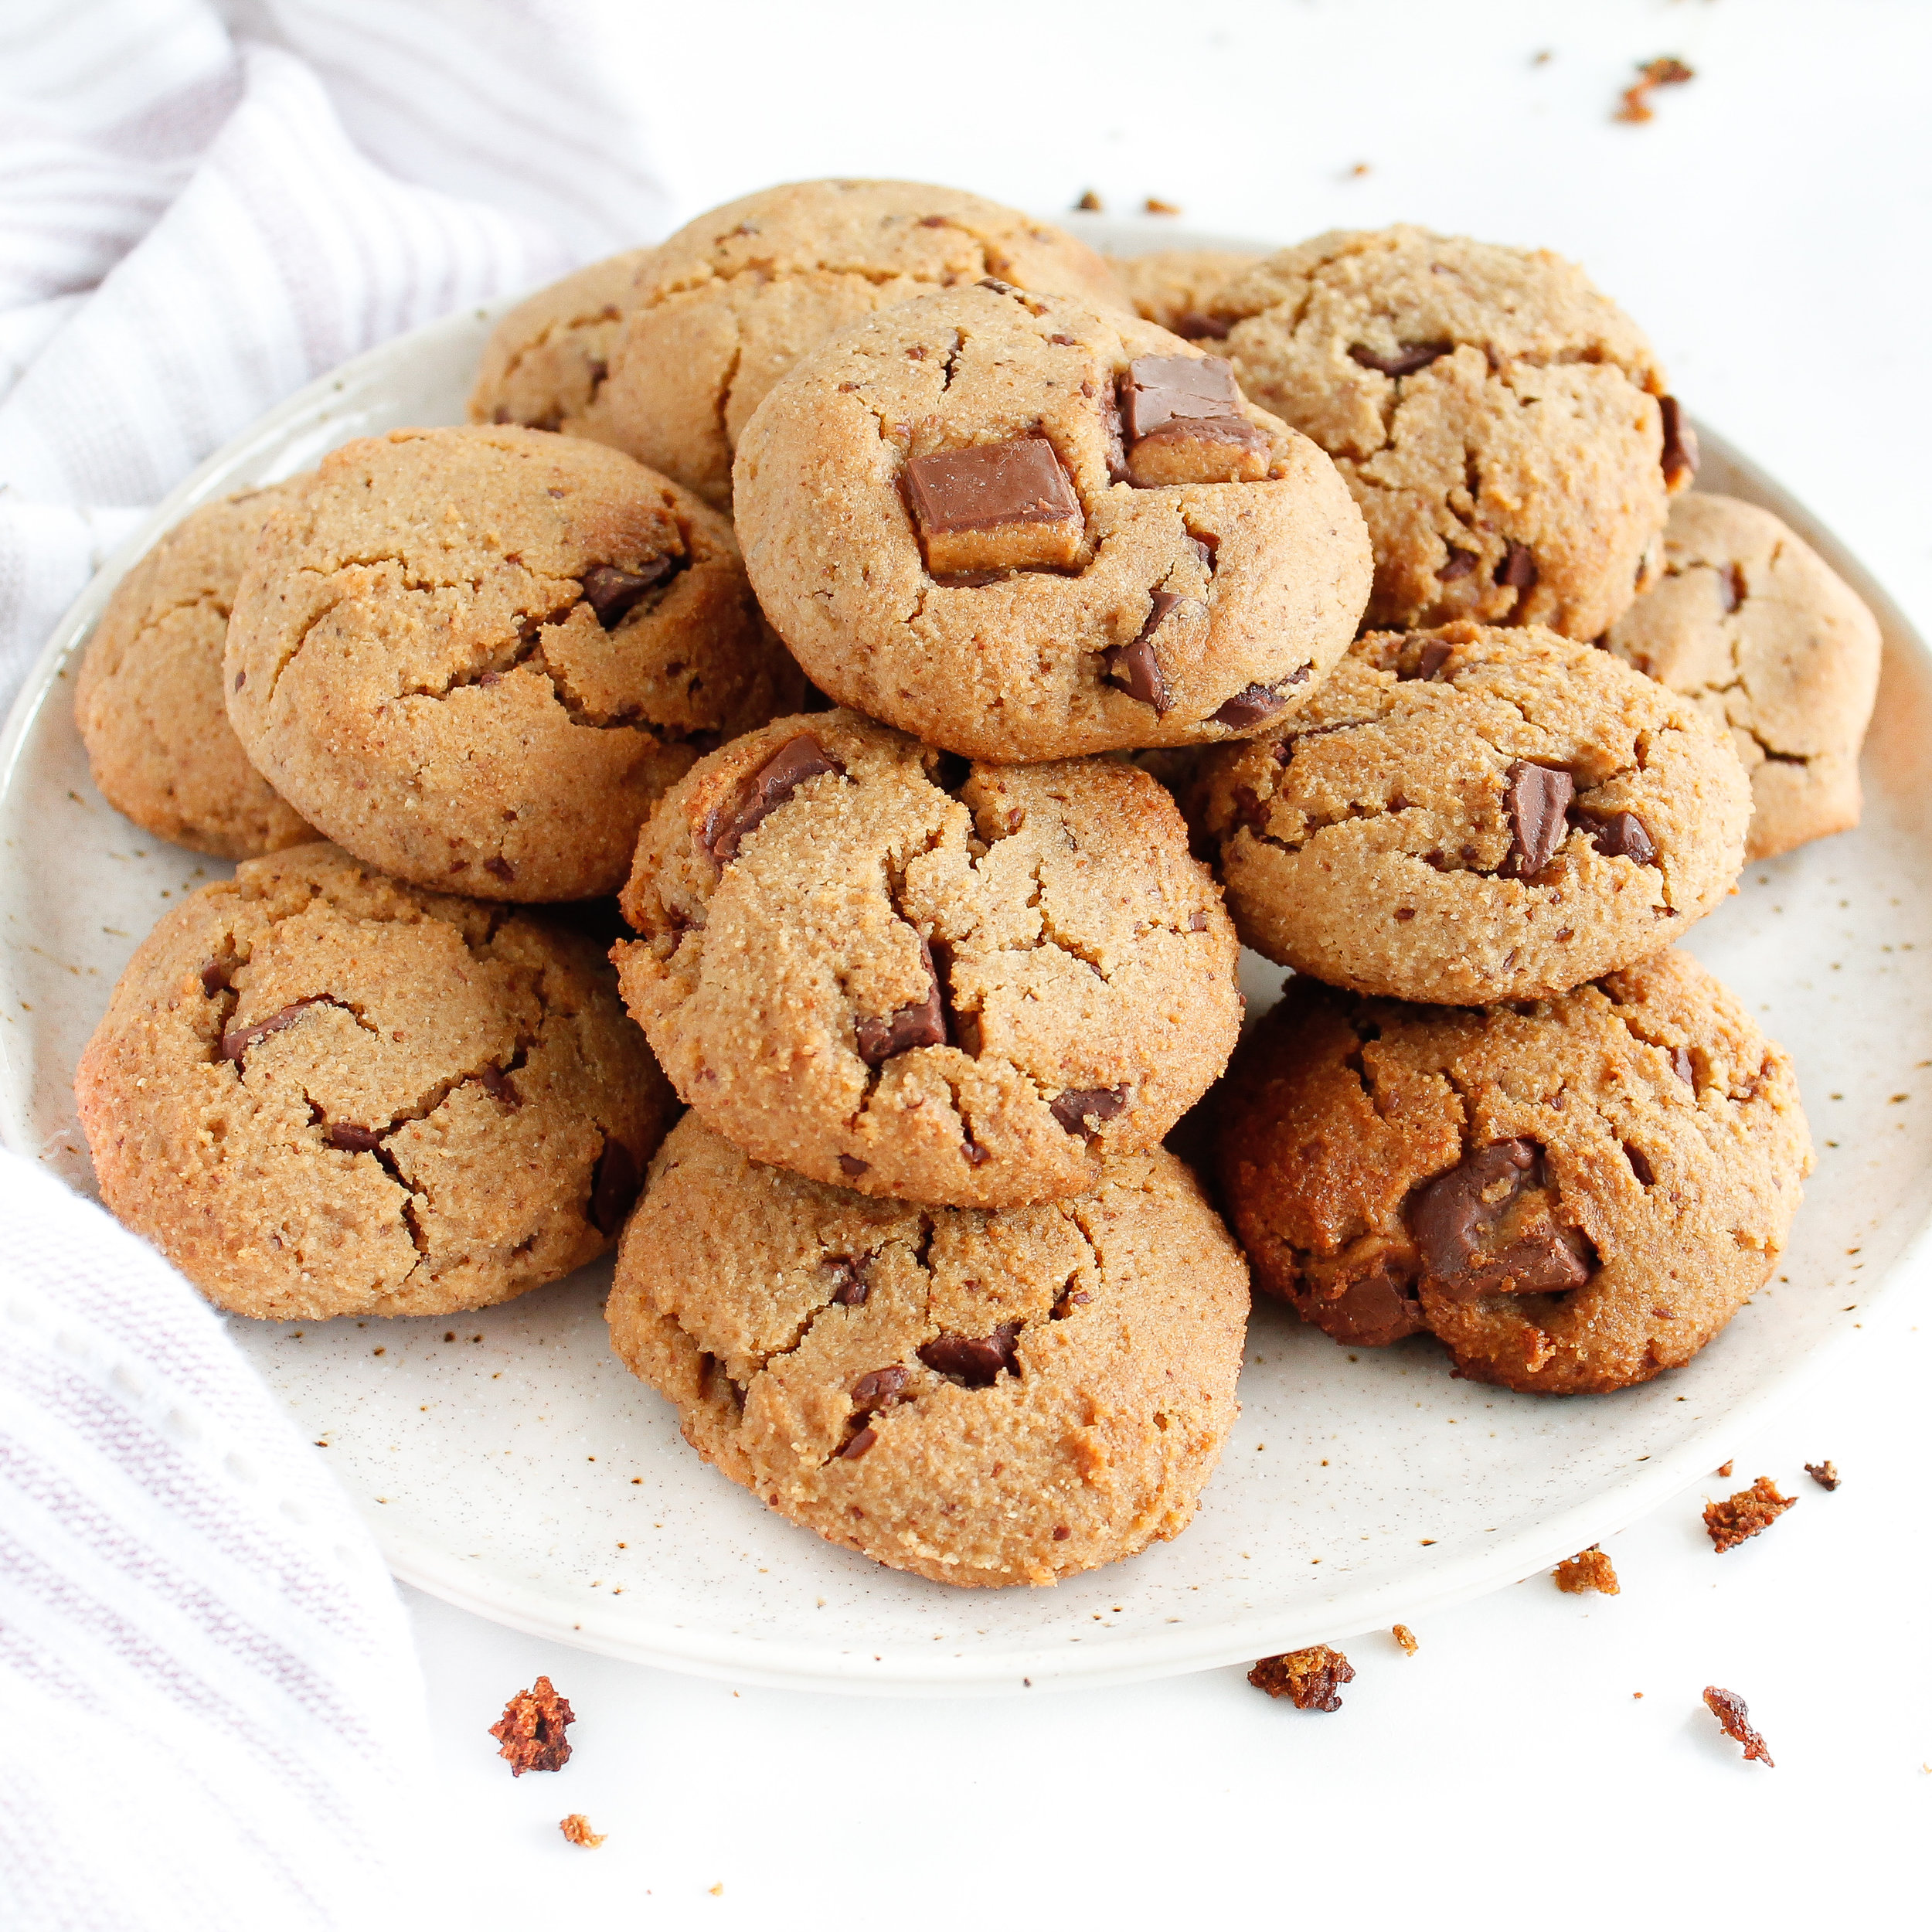 Paleo Almond Butter Chocolate Chunk Cookies    These paleo chocolate chunk cookies are grain free, dairy free and refined Sugar Free. They are the perfect healthy sweet treat to curb that sweet tooth and nourish your body! #paleocookies #refinedsugarfree #refinedsugarfreecookies